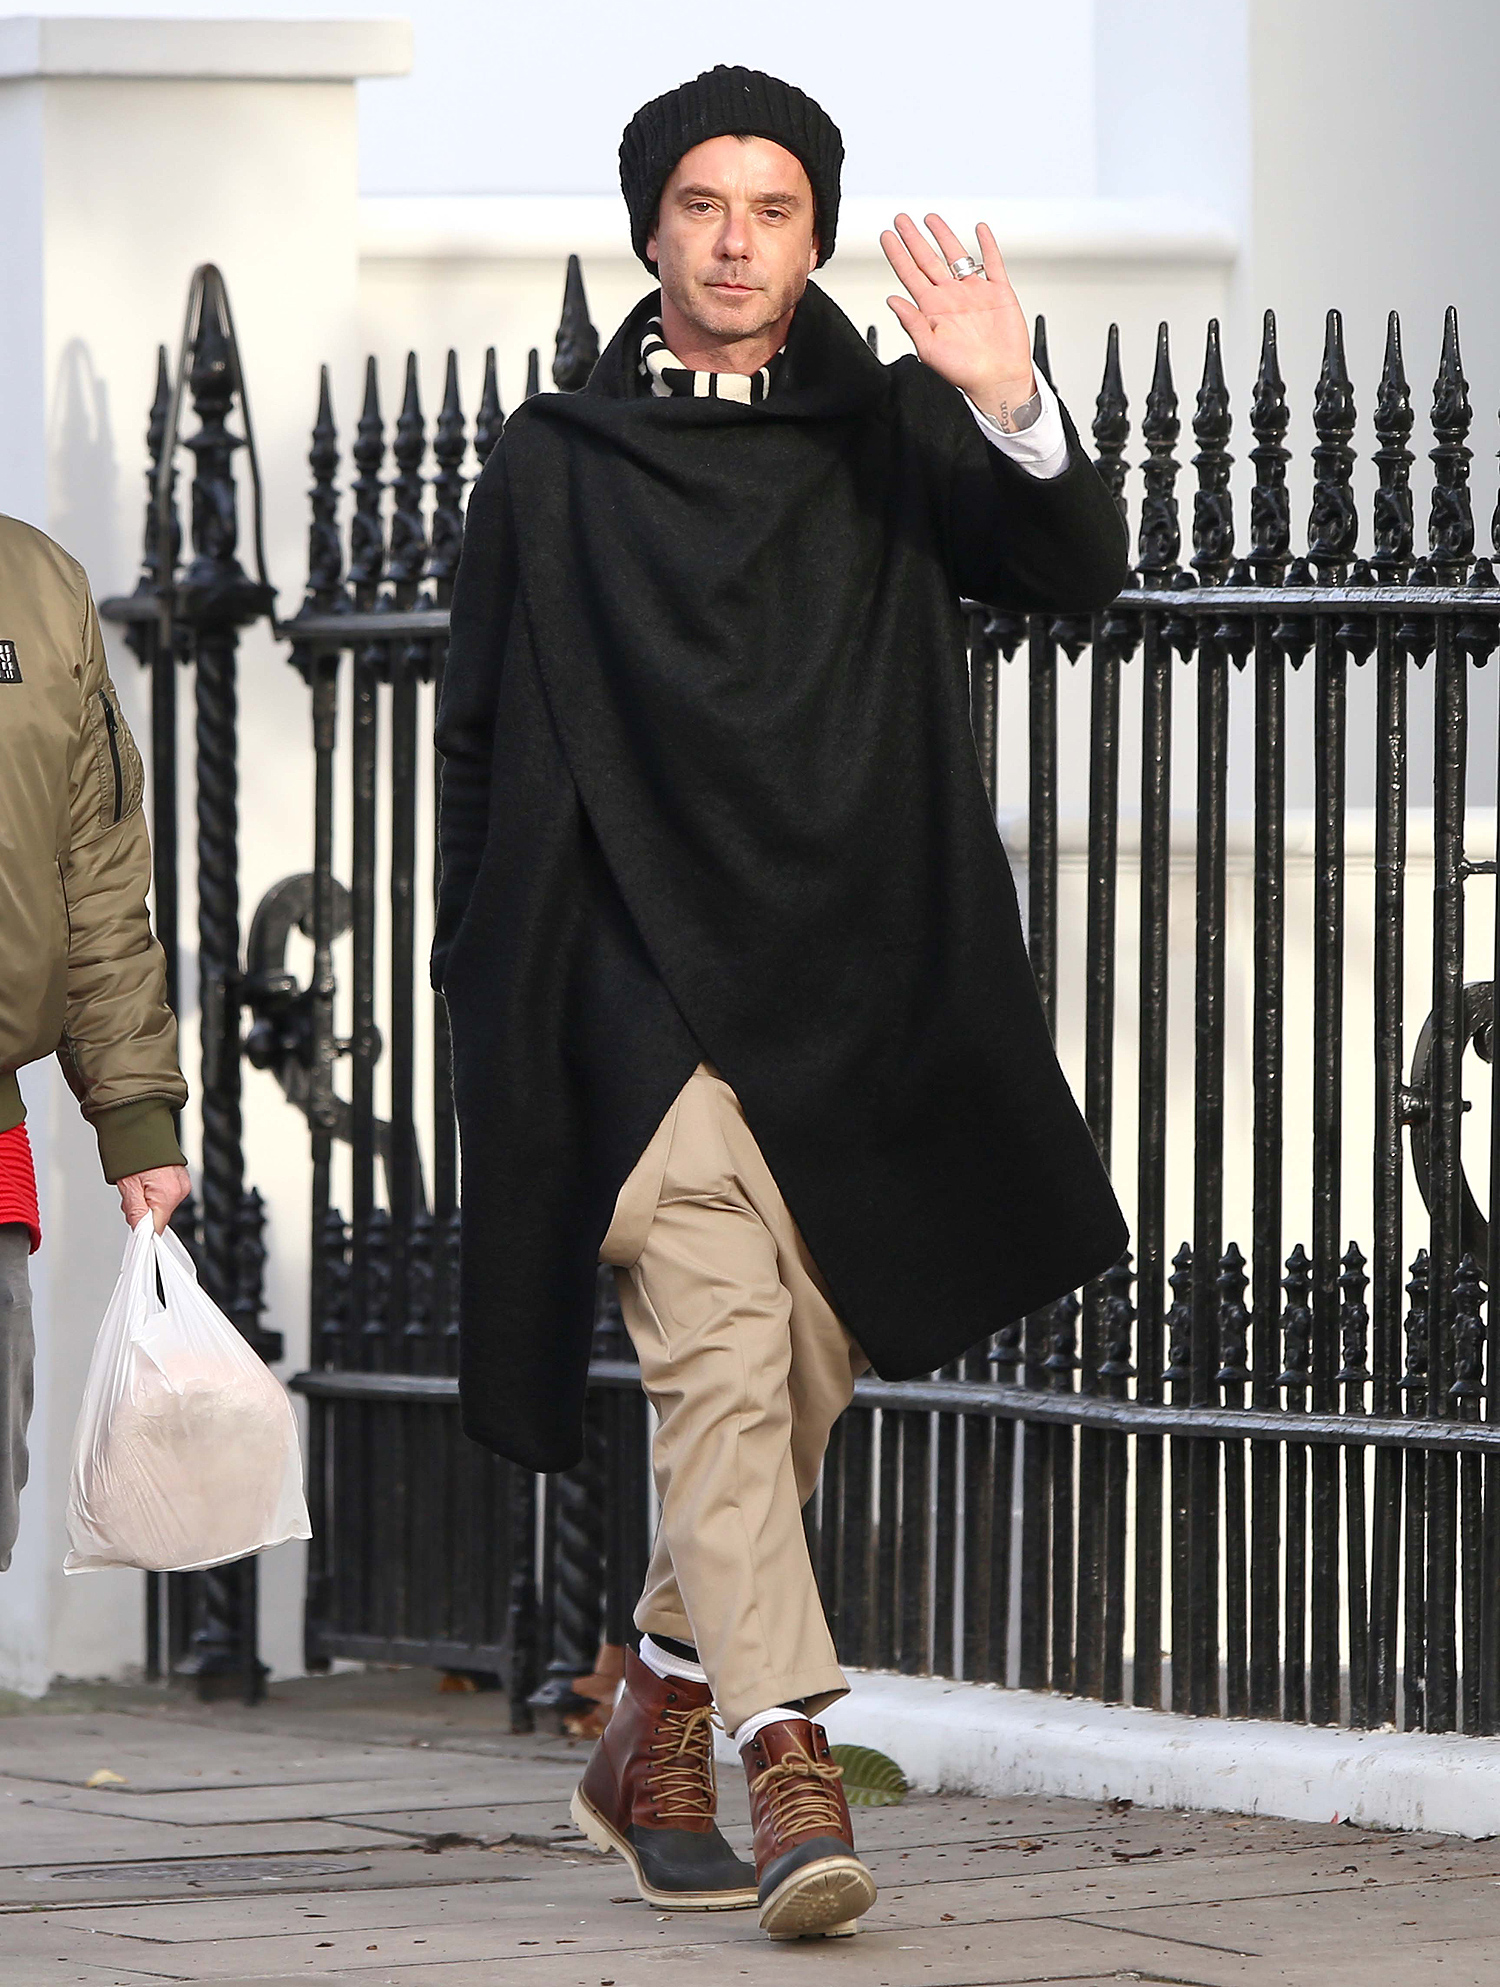 EXCLUSIVE: New judge of The Voice UK Gavin Rossdale wraps up warm for a walk in Primrose Hill ahead of the show's launch on Saturday.